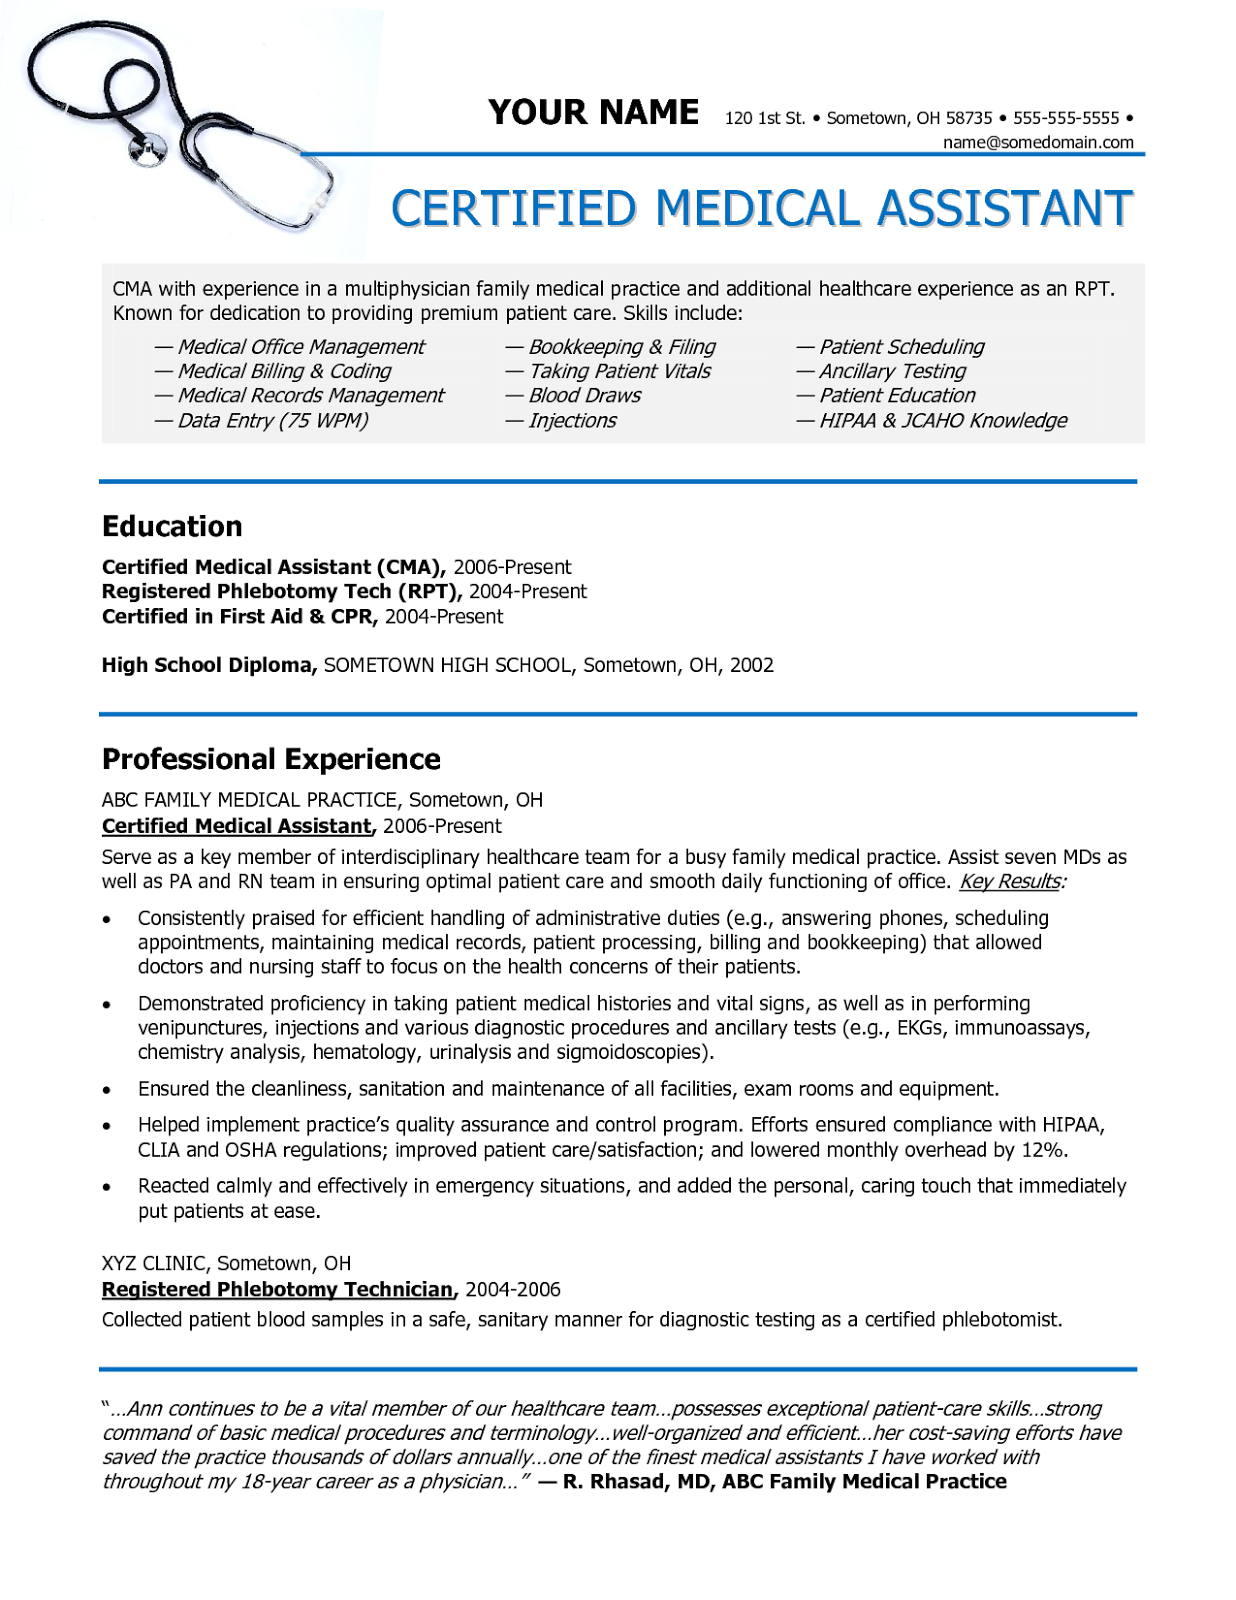 Sample Of A Medical Assistant Resume  Sample Resumes. Map Of Europe Continent Template. Resume Objectives For Business Template. Set Up A Business Letter Template. Social Work Resume Objective Statements Template. Microsoft Word Templates Invitations Template. Striking Business Card Holder Multiple Compartments. Mla Style Essay Examples Template. Microsoft Word Macro Enabled Template